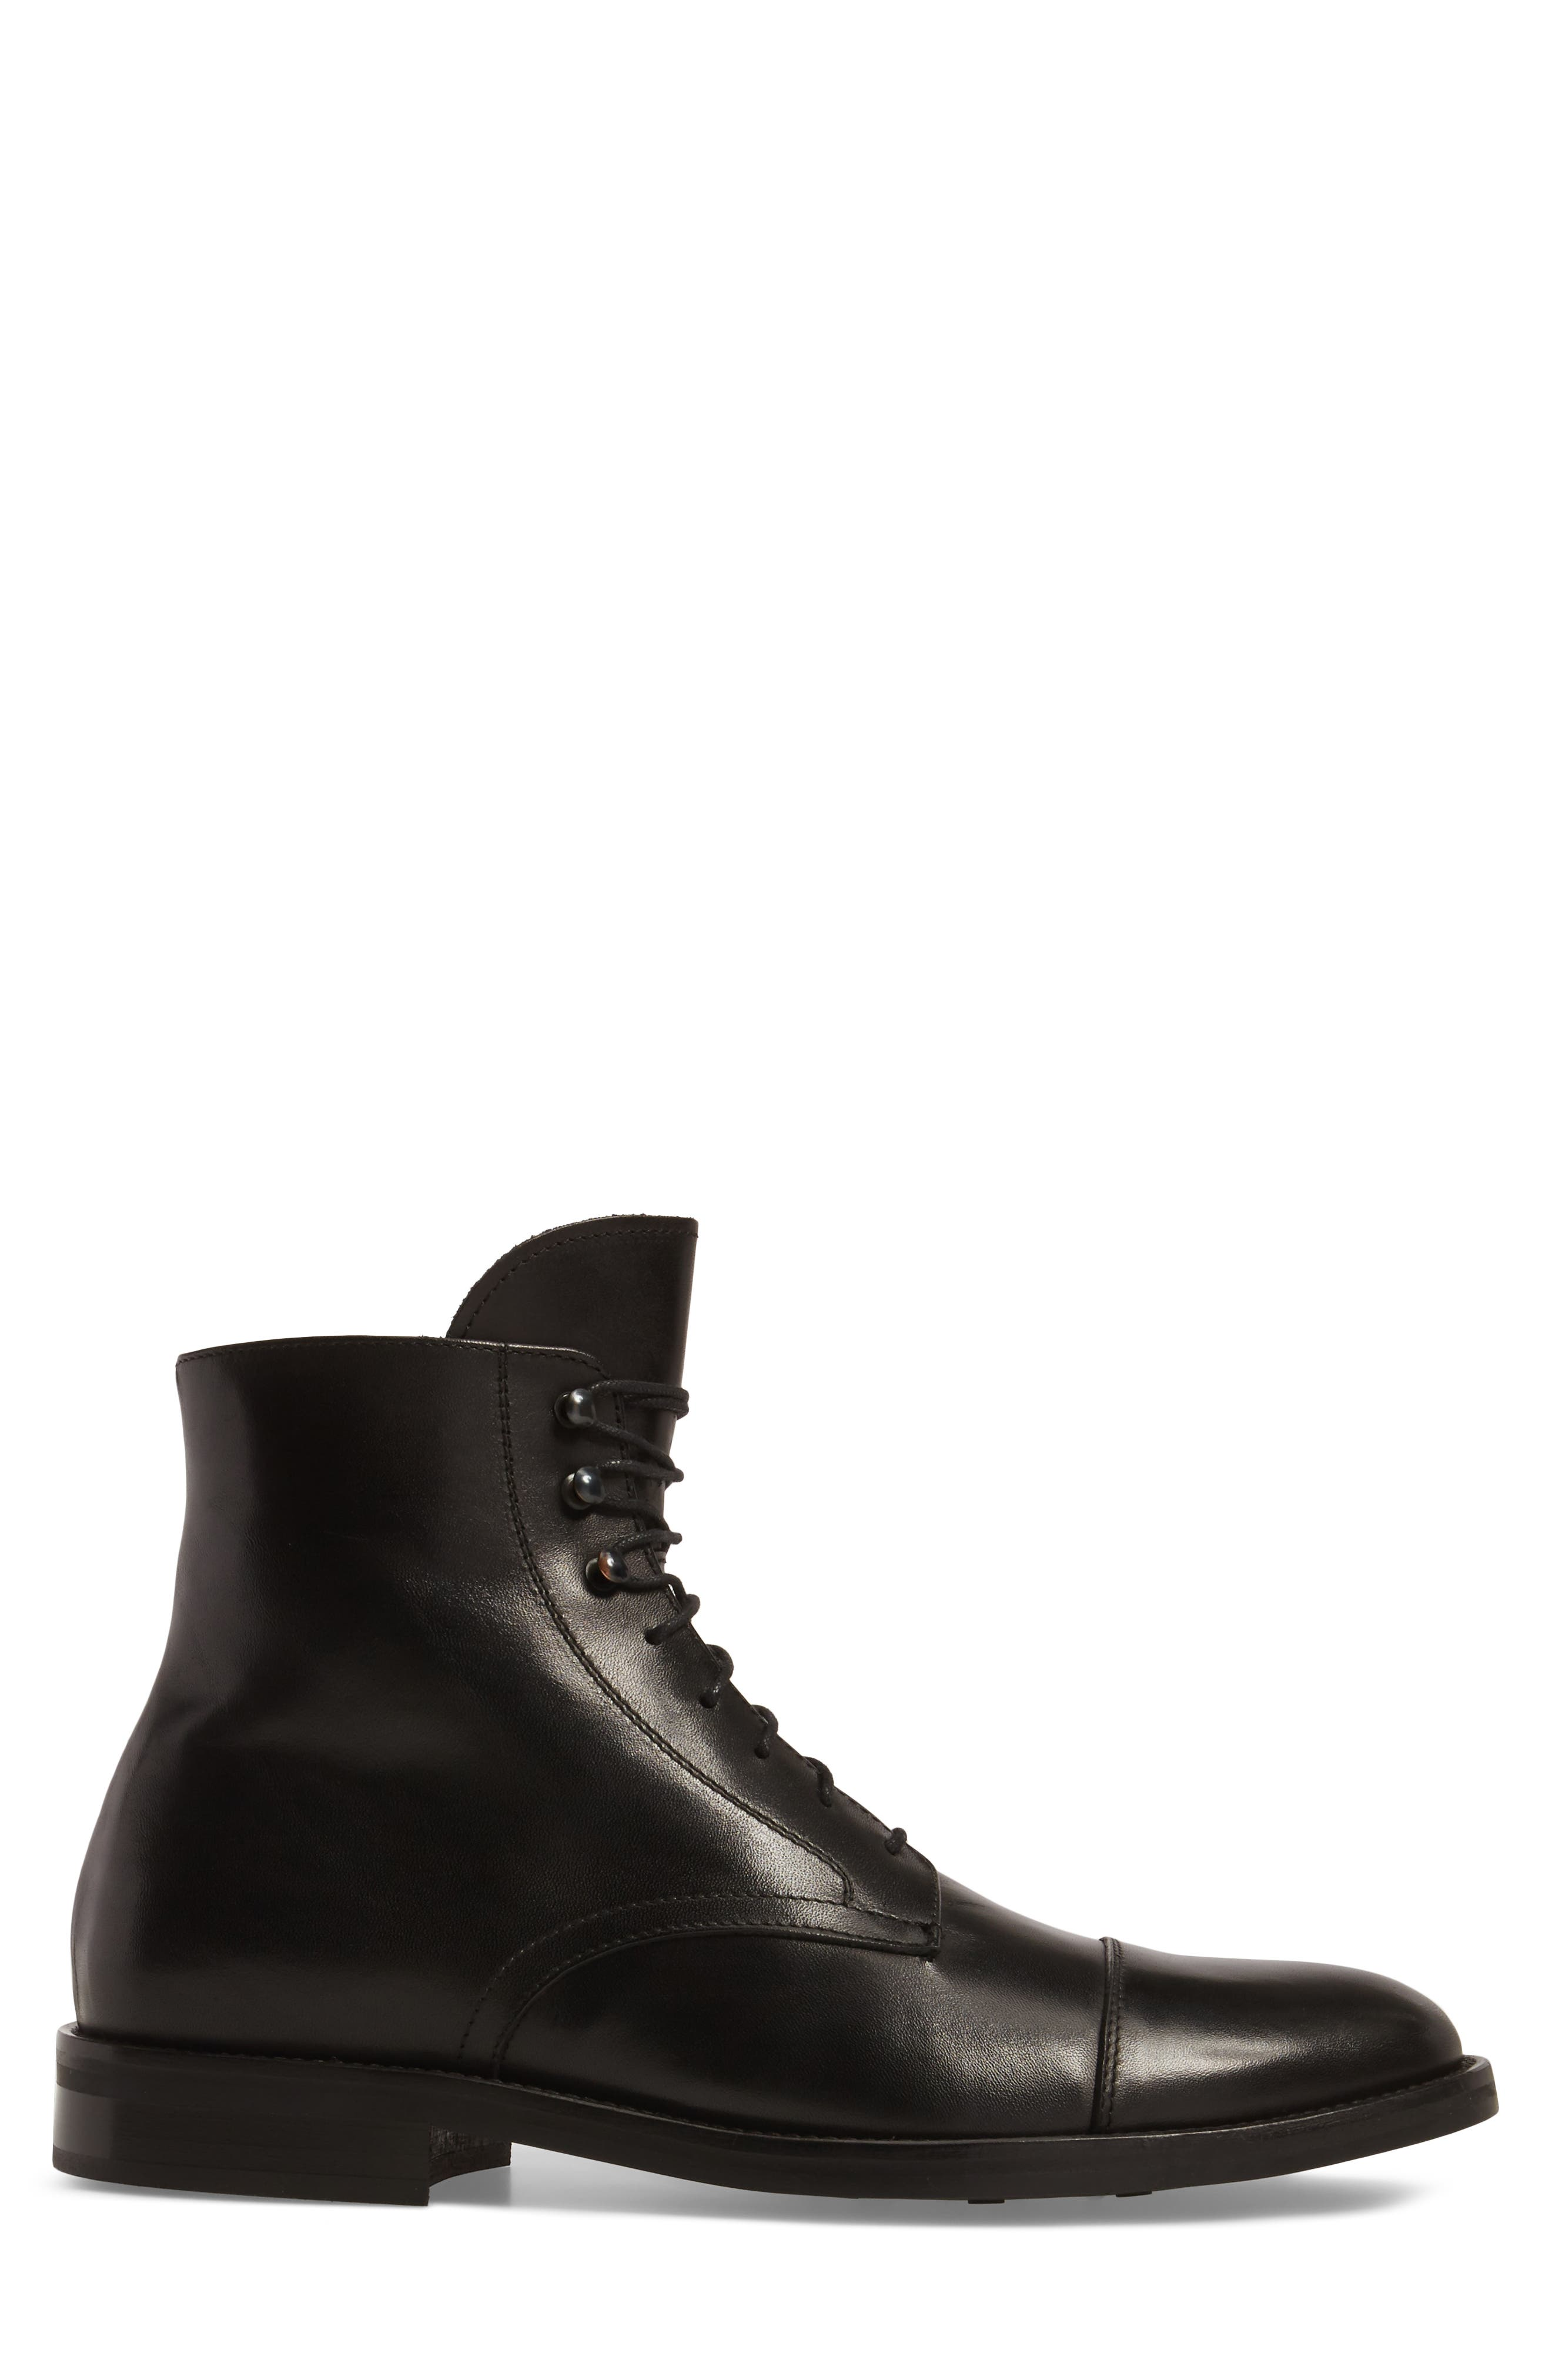 Henri Cap Toe Boot,                             Alternate thumbnail 3, color,                             BLACK